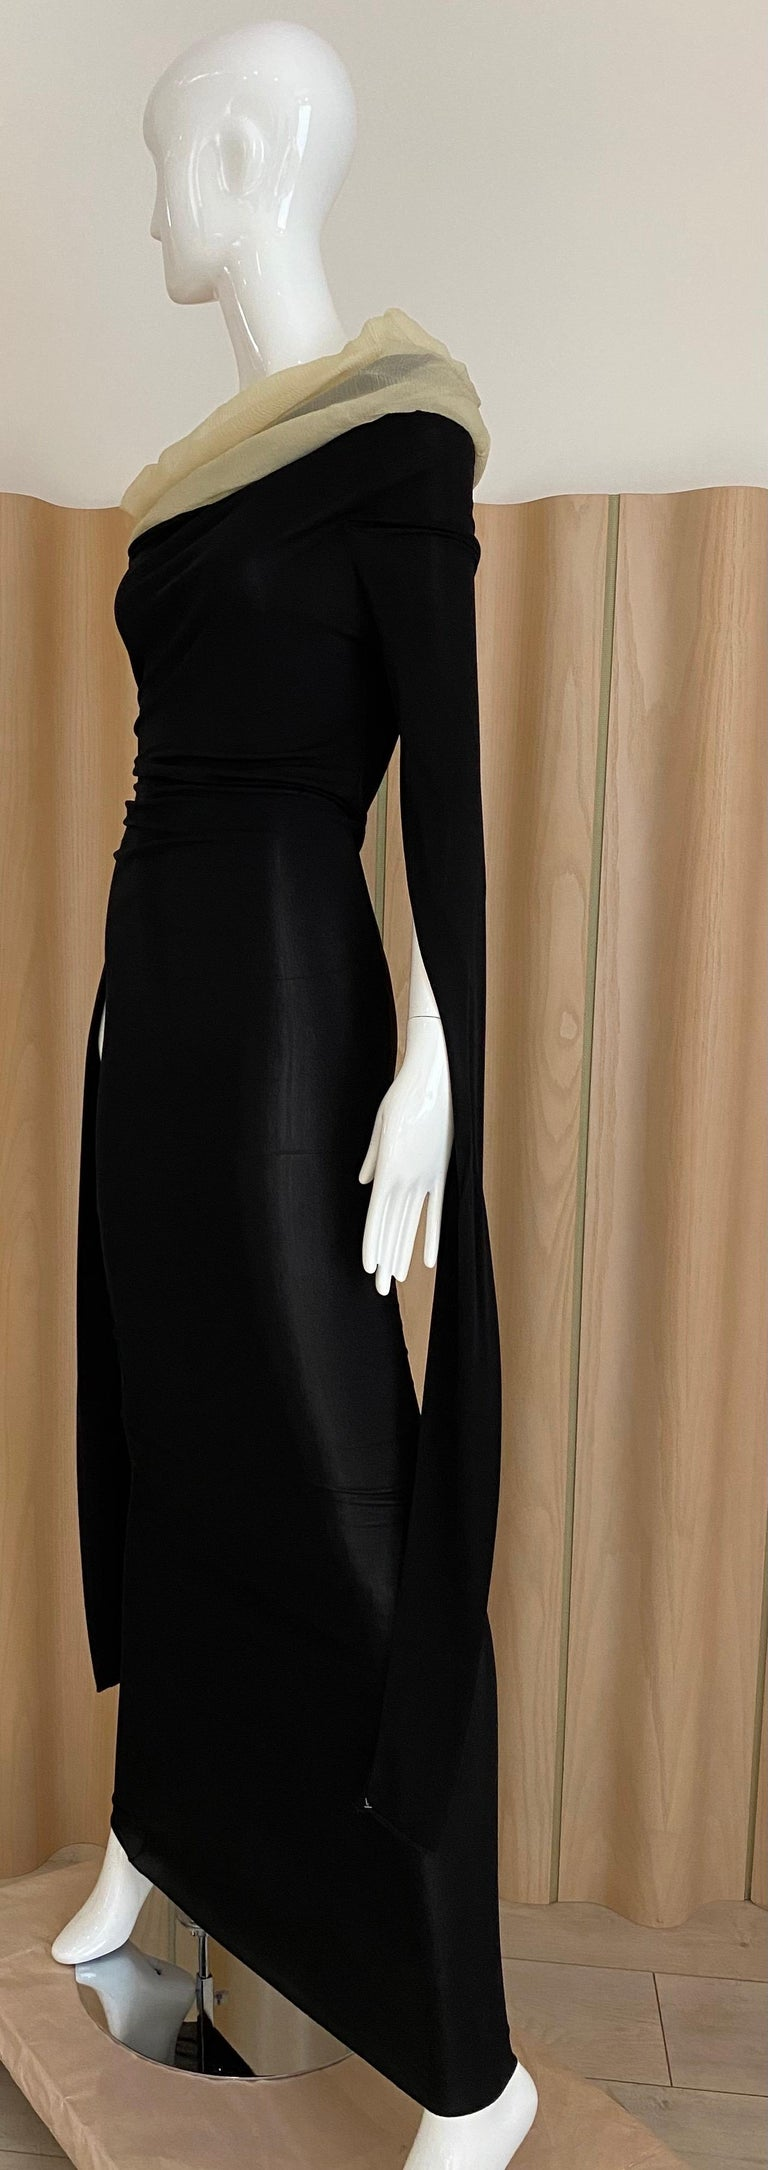 1990s Jean Paul Gaultier Black Knit Dress with Cut Out Sleeves 4